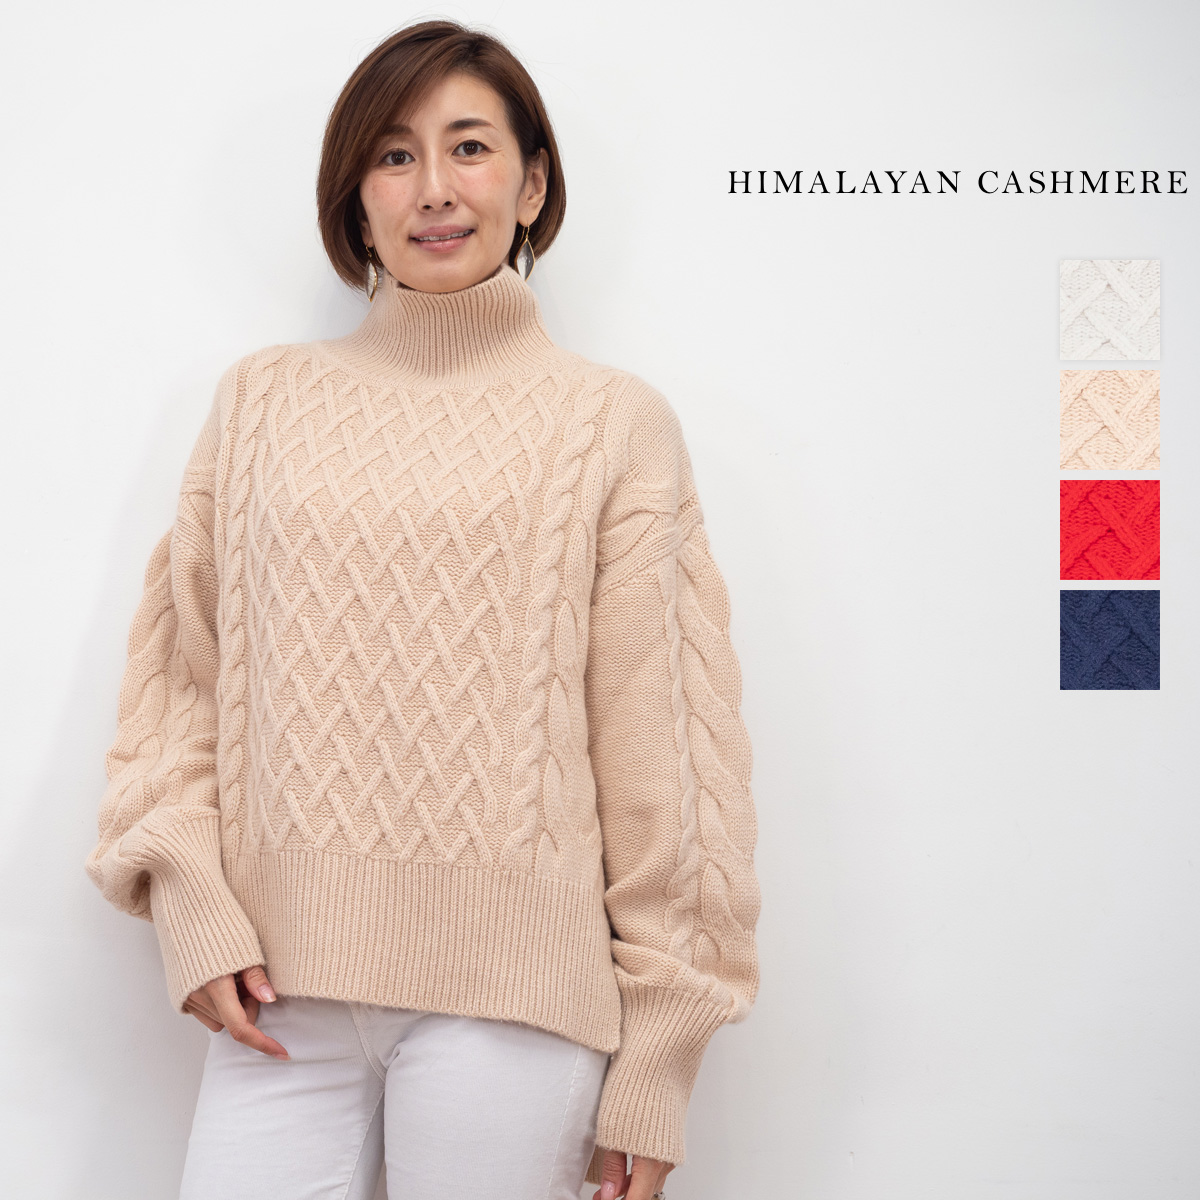 【19AW新作】【アプト別注】HIMALAYAN CASHMERE ヒマラヤンカシミヤ  ハイネック ケーブルニット H-NECK WITH CABEL ND-01-019 | 秋冬 トップス 19AW